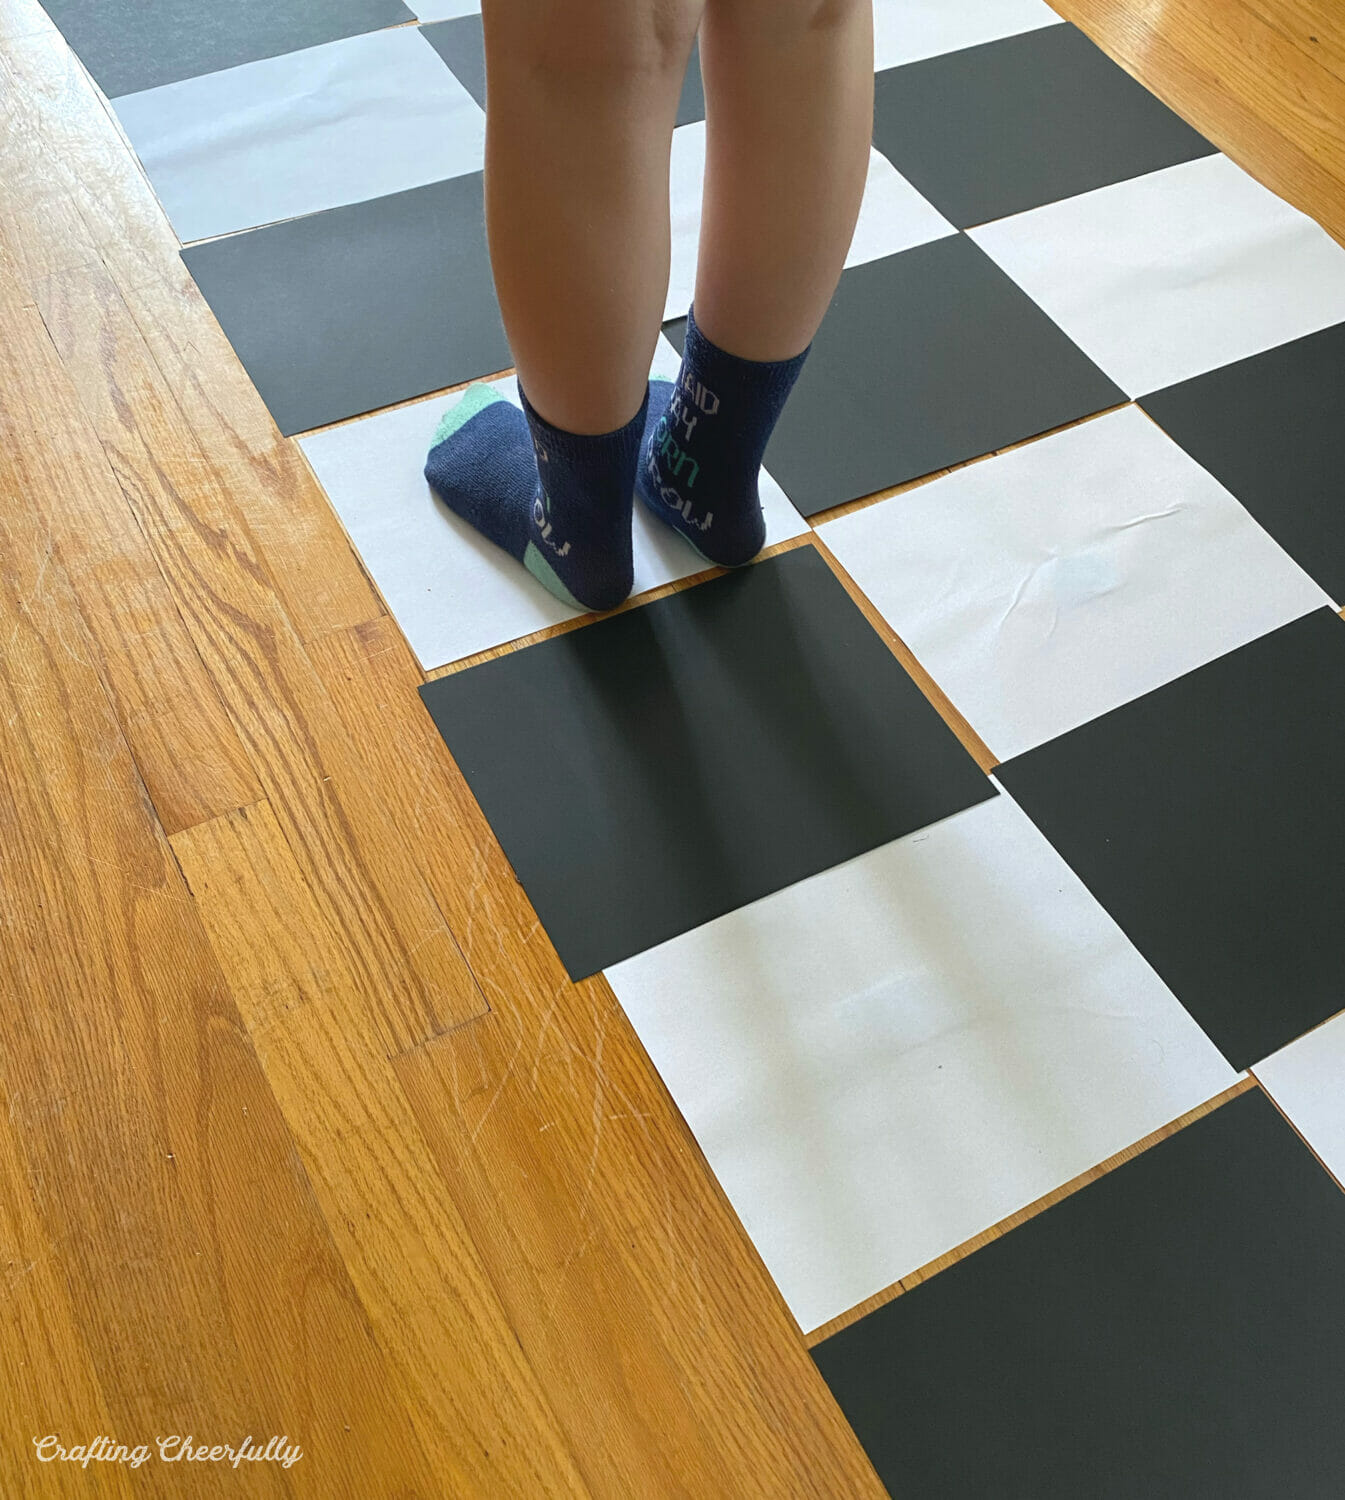 A child stands on sheets of paper laid out to look like a chessboard on the floor.